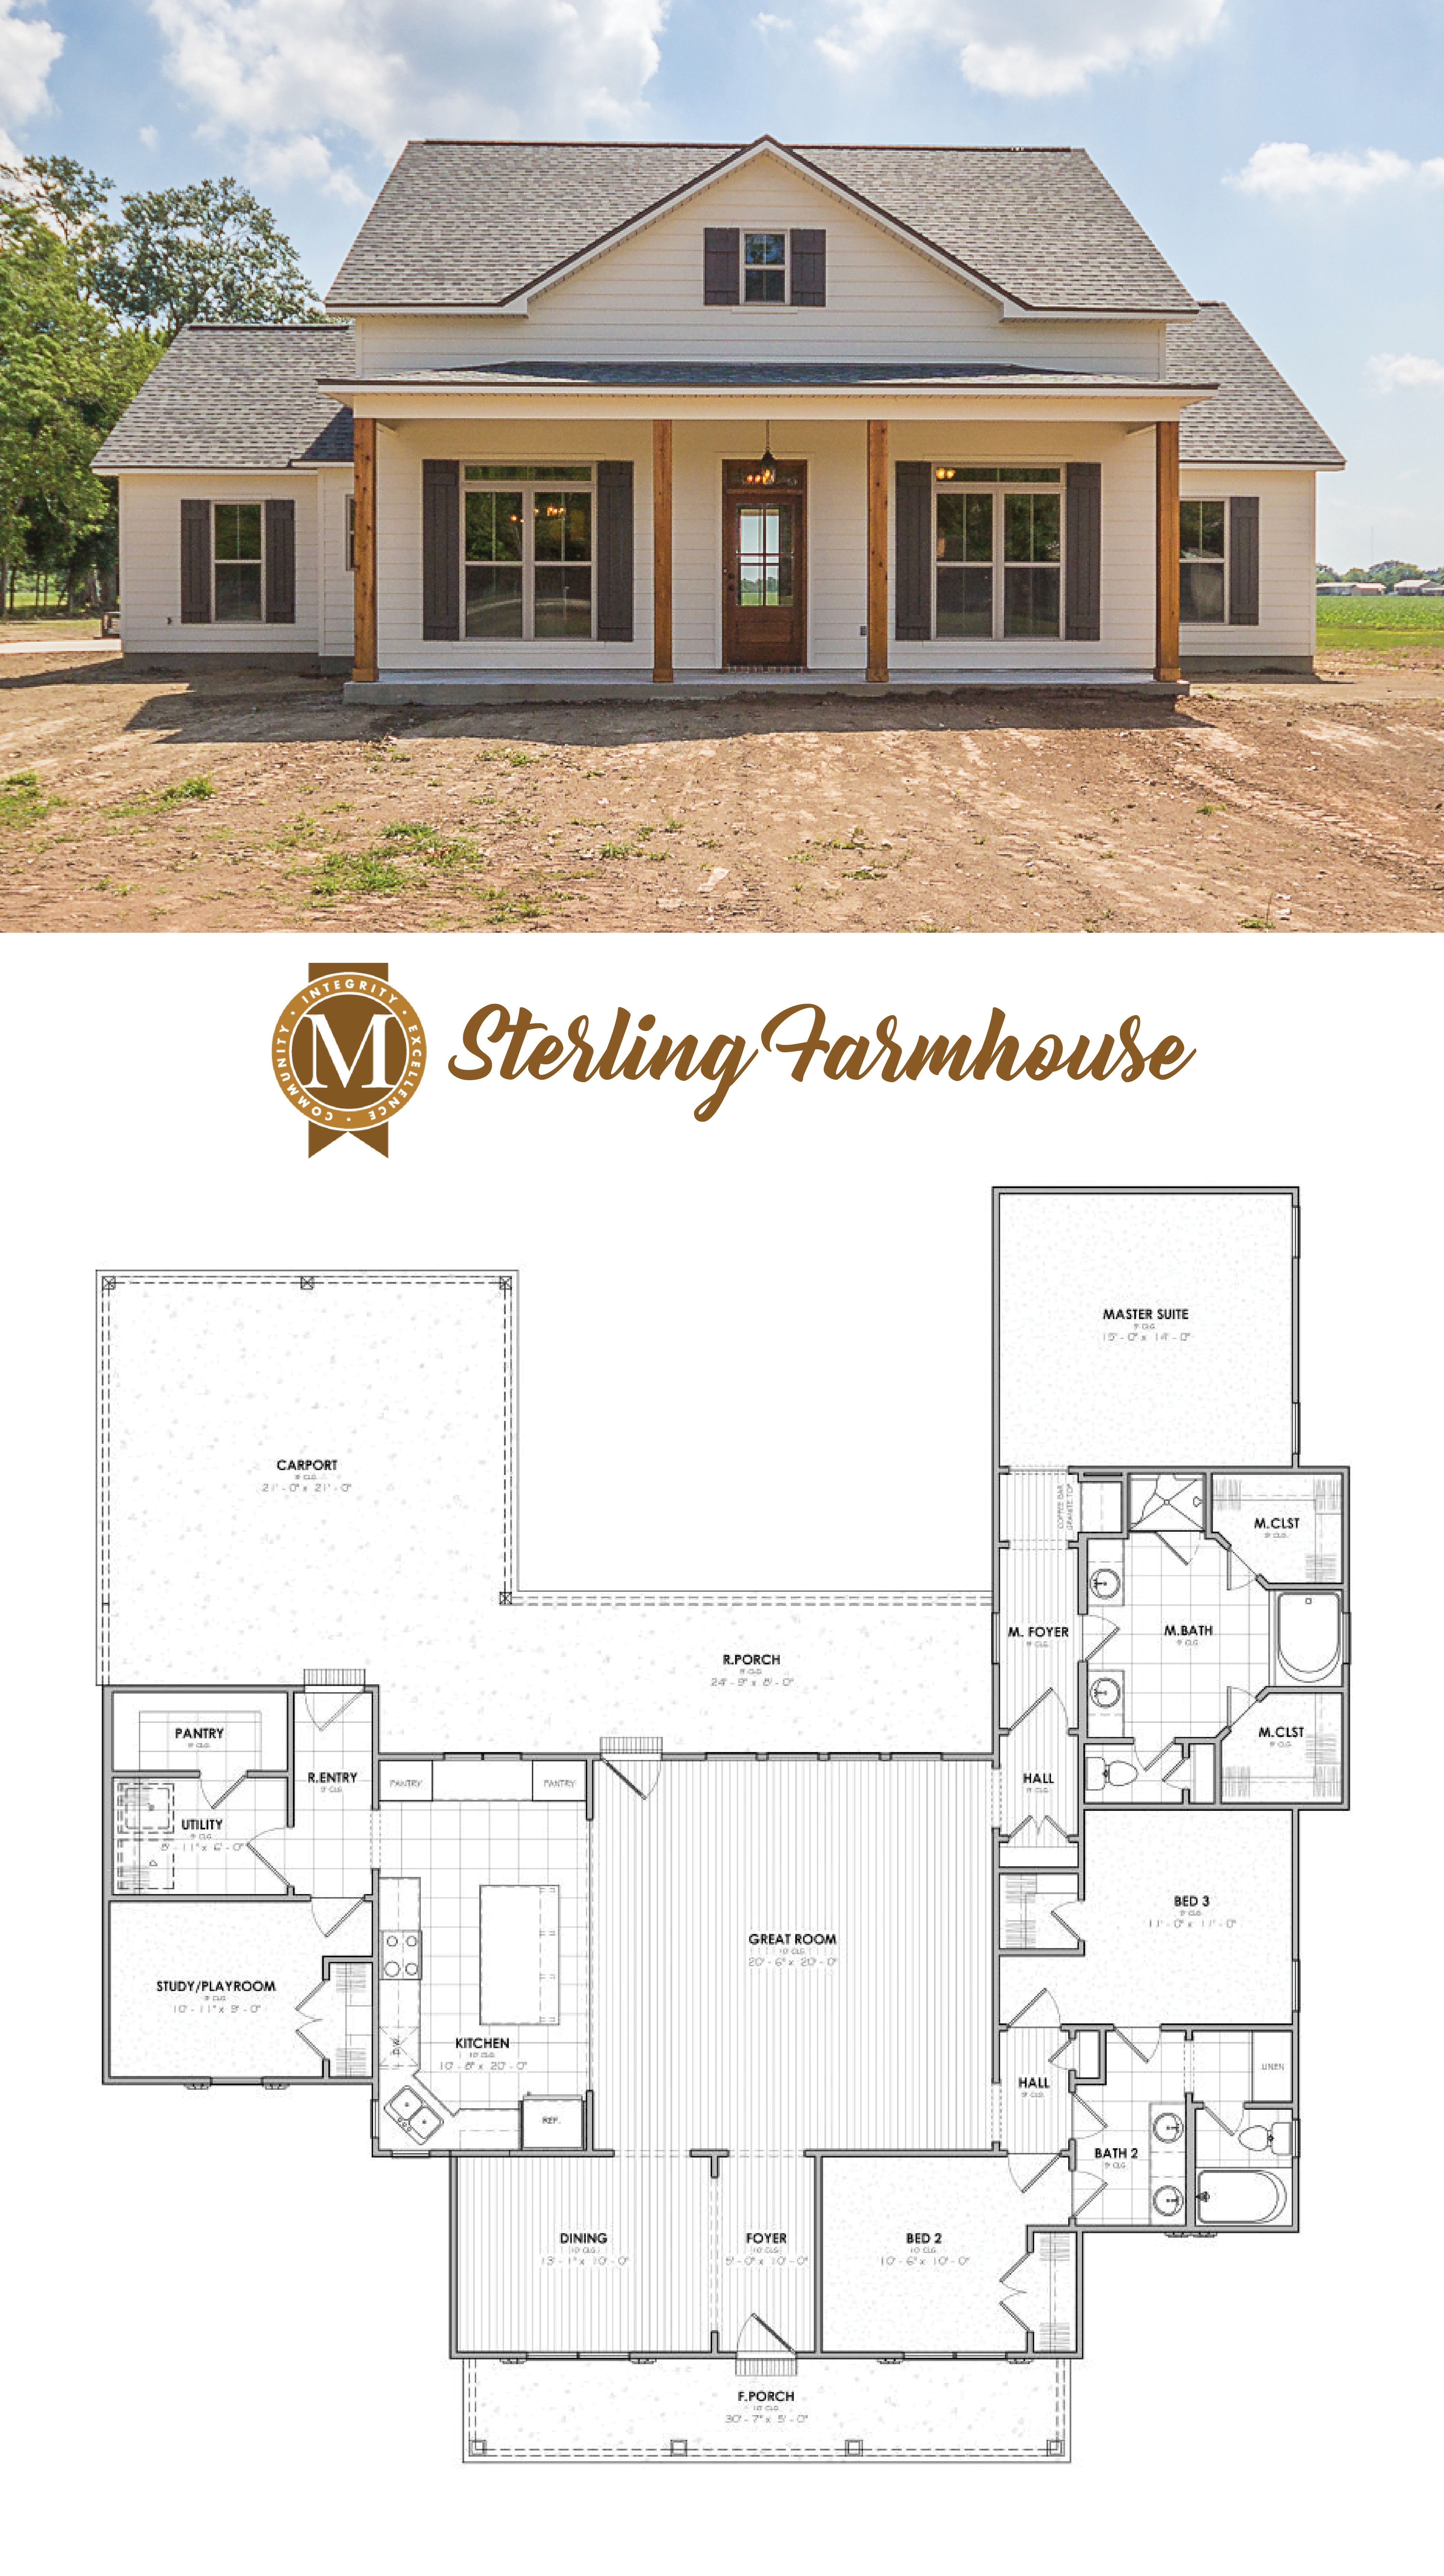 Living Sq Ft 2206 Bedrooms 3 Or 4 Baths 2 Lafayette Lake Charles Baton Rouge Louisiana House Plans Farmhouse House Plans Farmhouse House